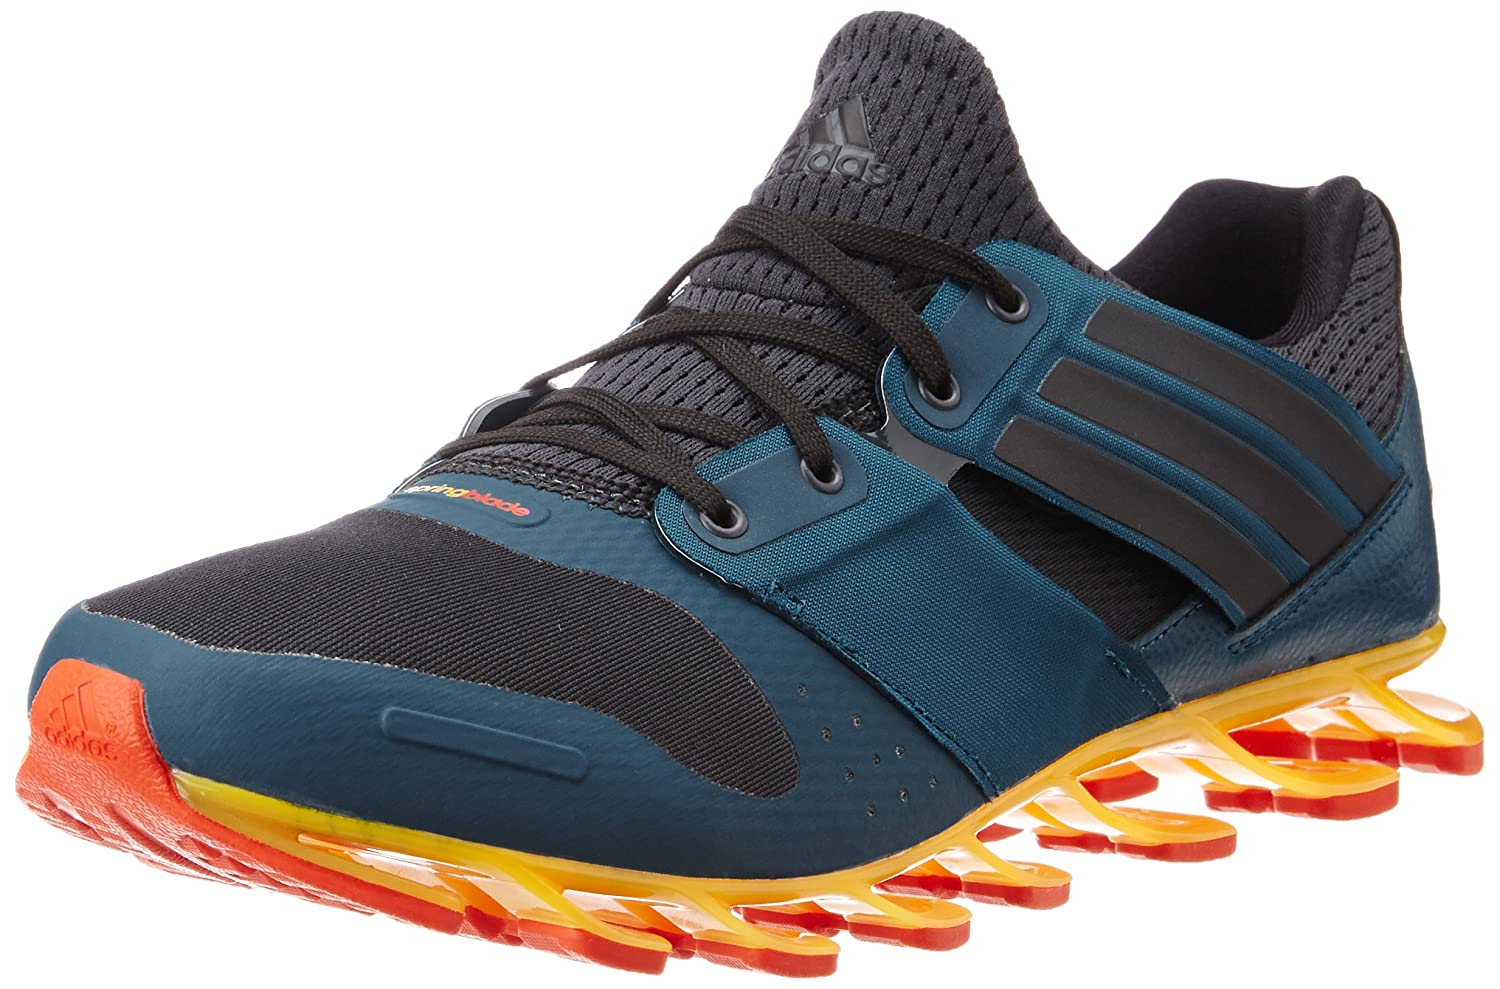 on sale c90af 6c6a3 adidas Springblade Solyce, Men s Sneakers  Amazon.co.uk  Shoes   Bags